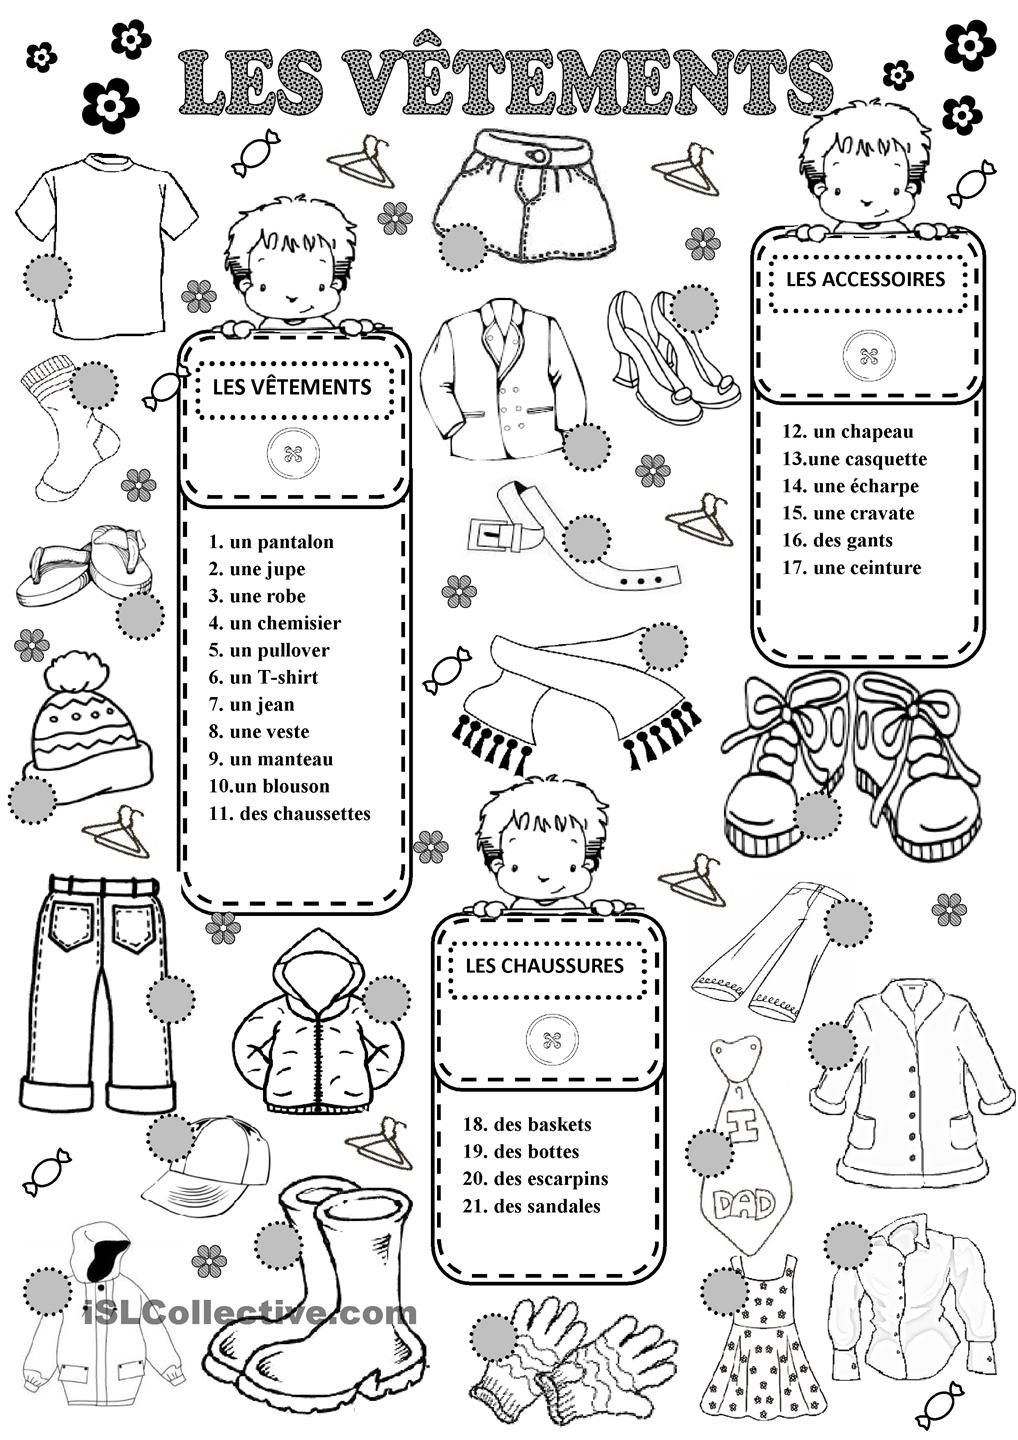 Les Vêtements | French worksheets, French outfit, French ...